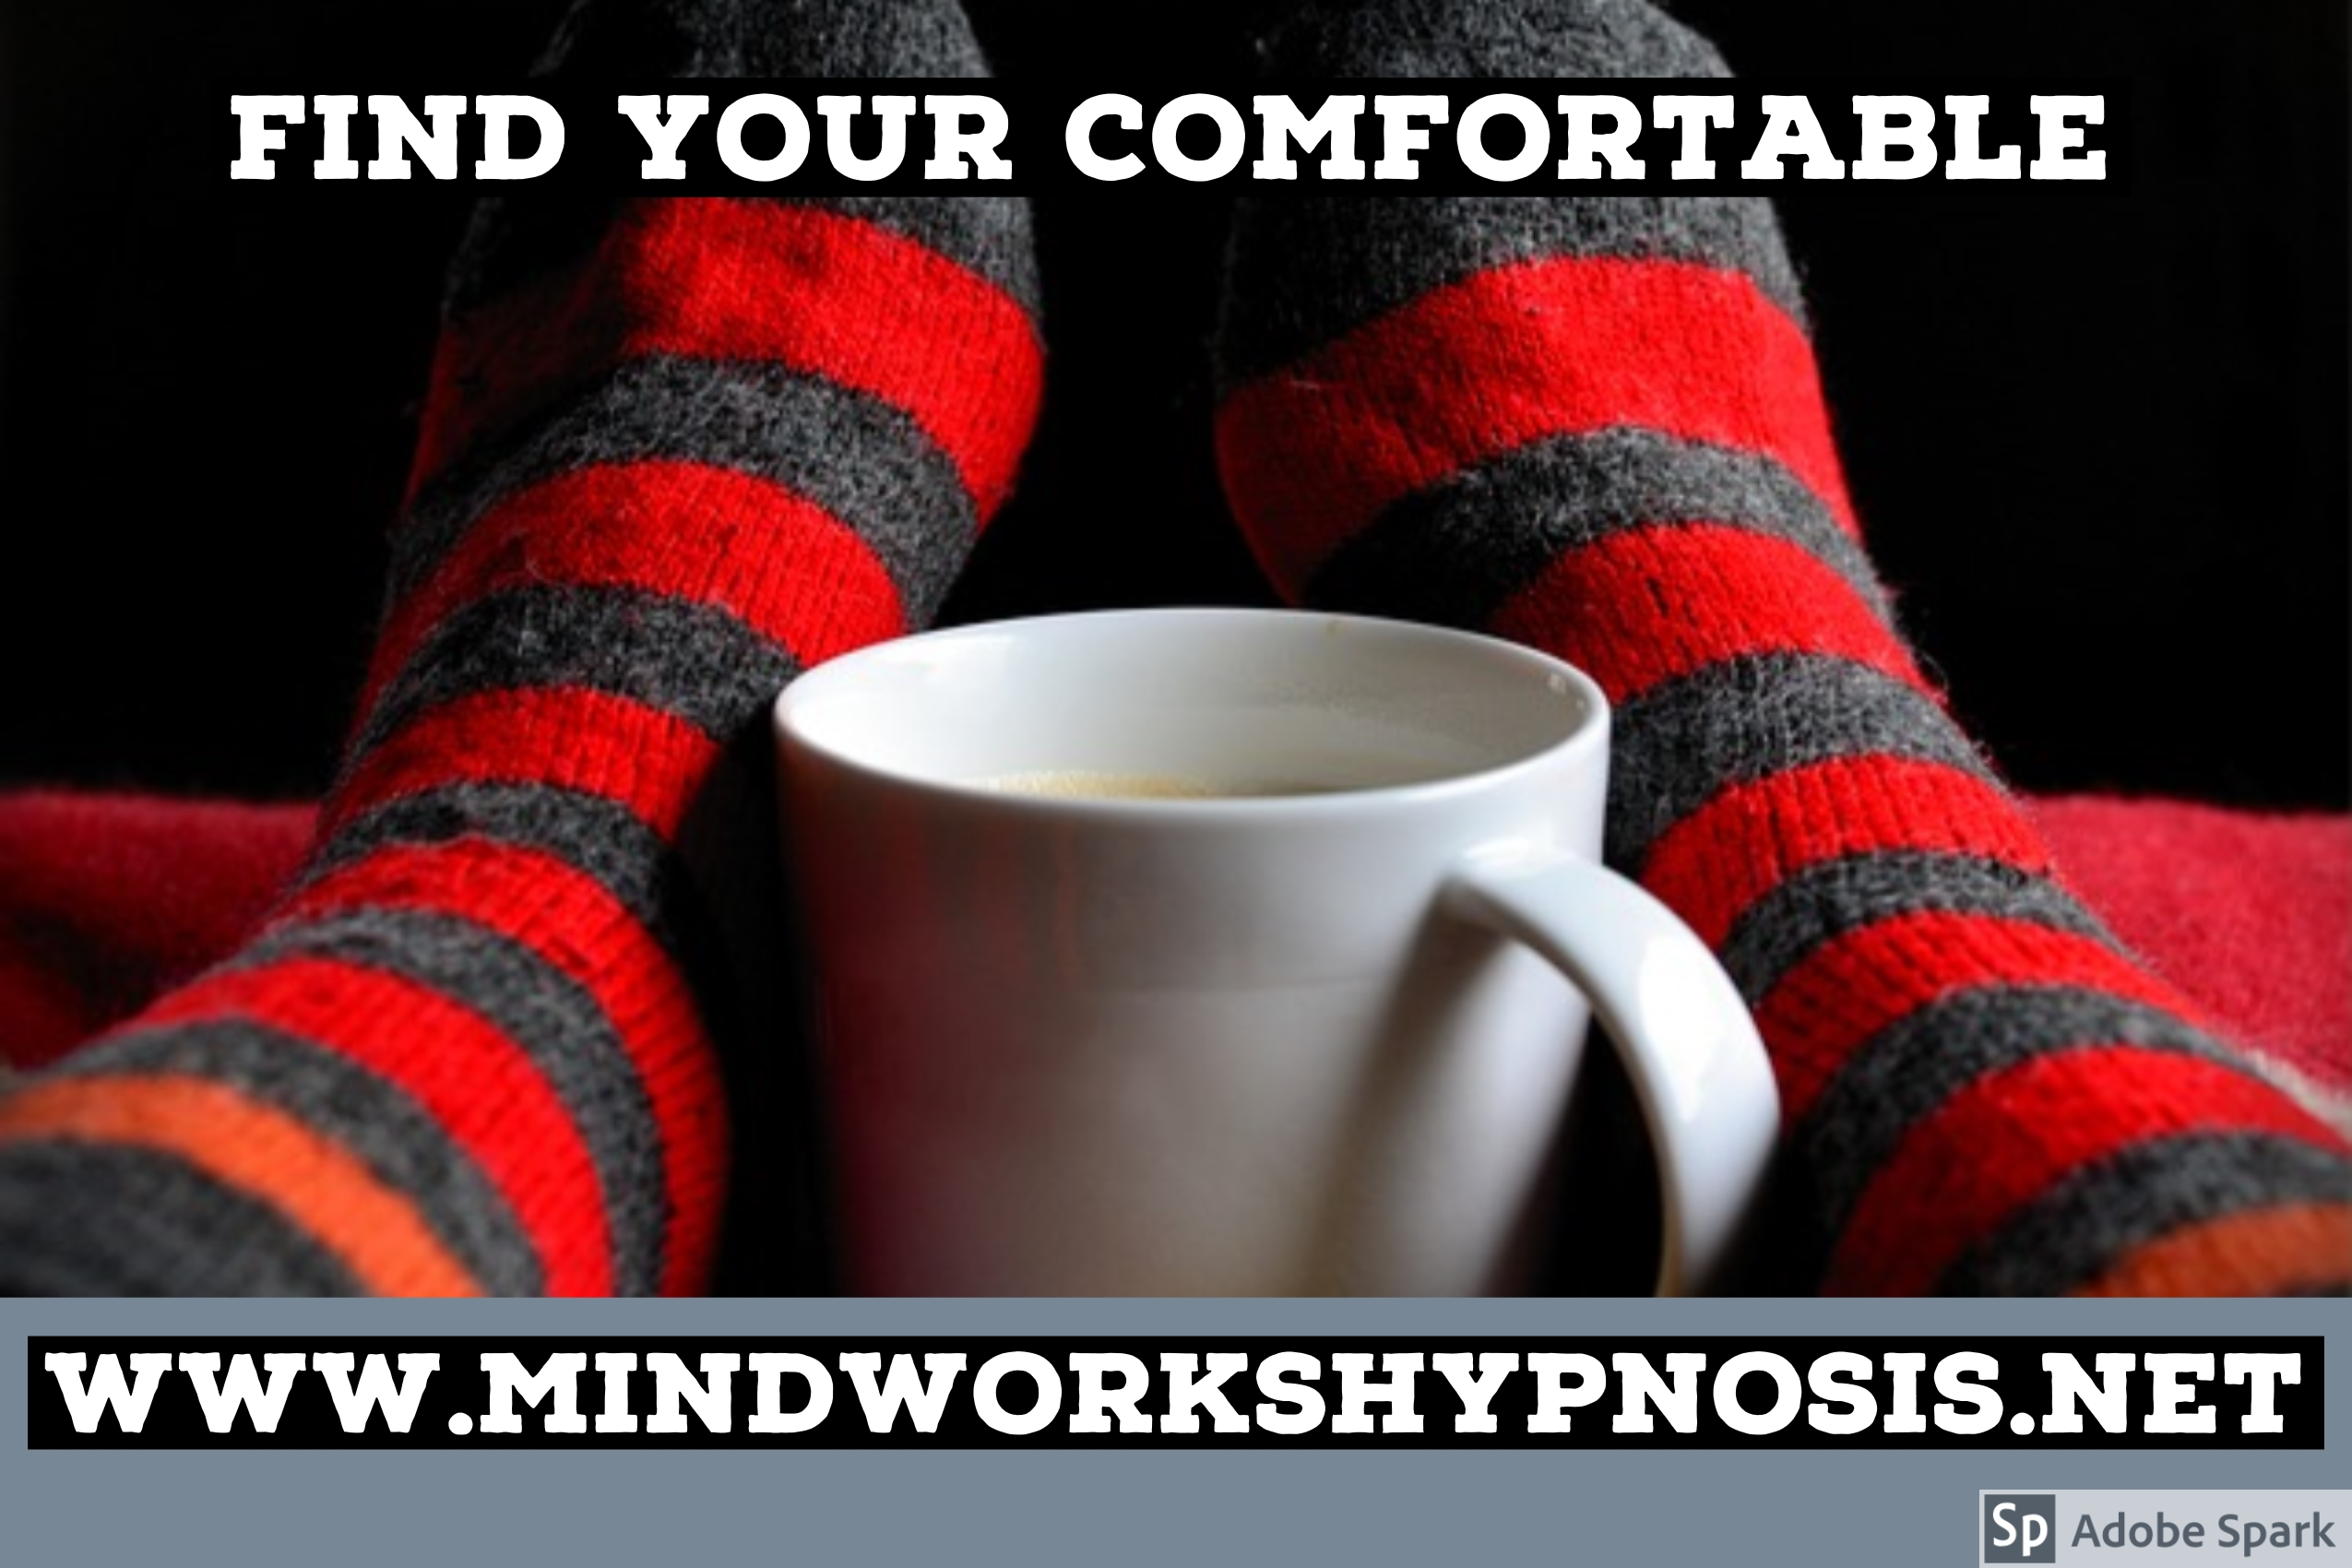 Find Your Comfortable with skilled hypnosis and NLP services.